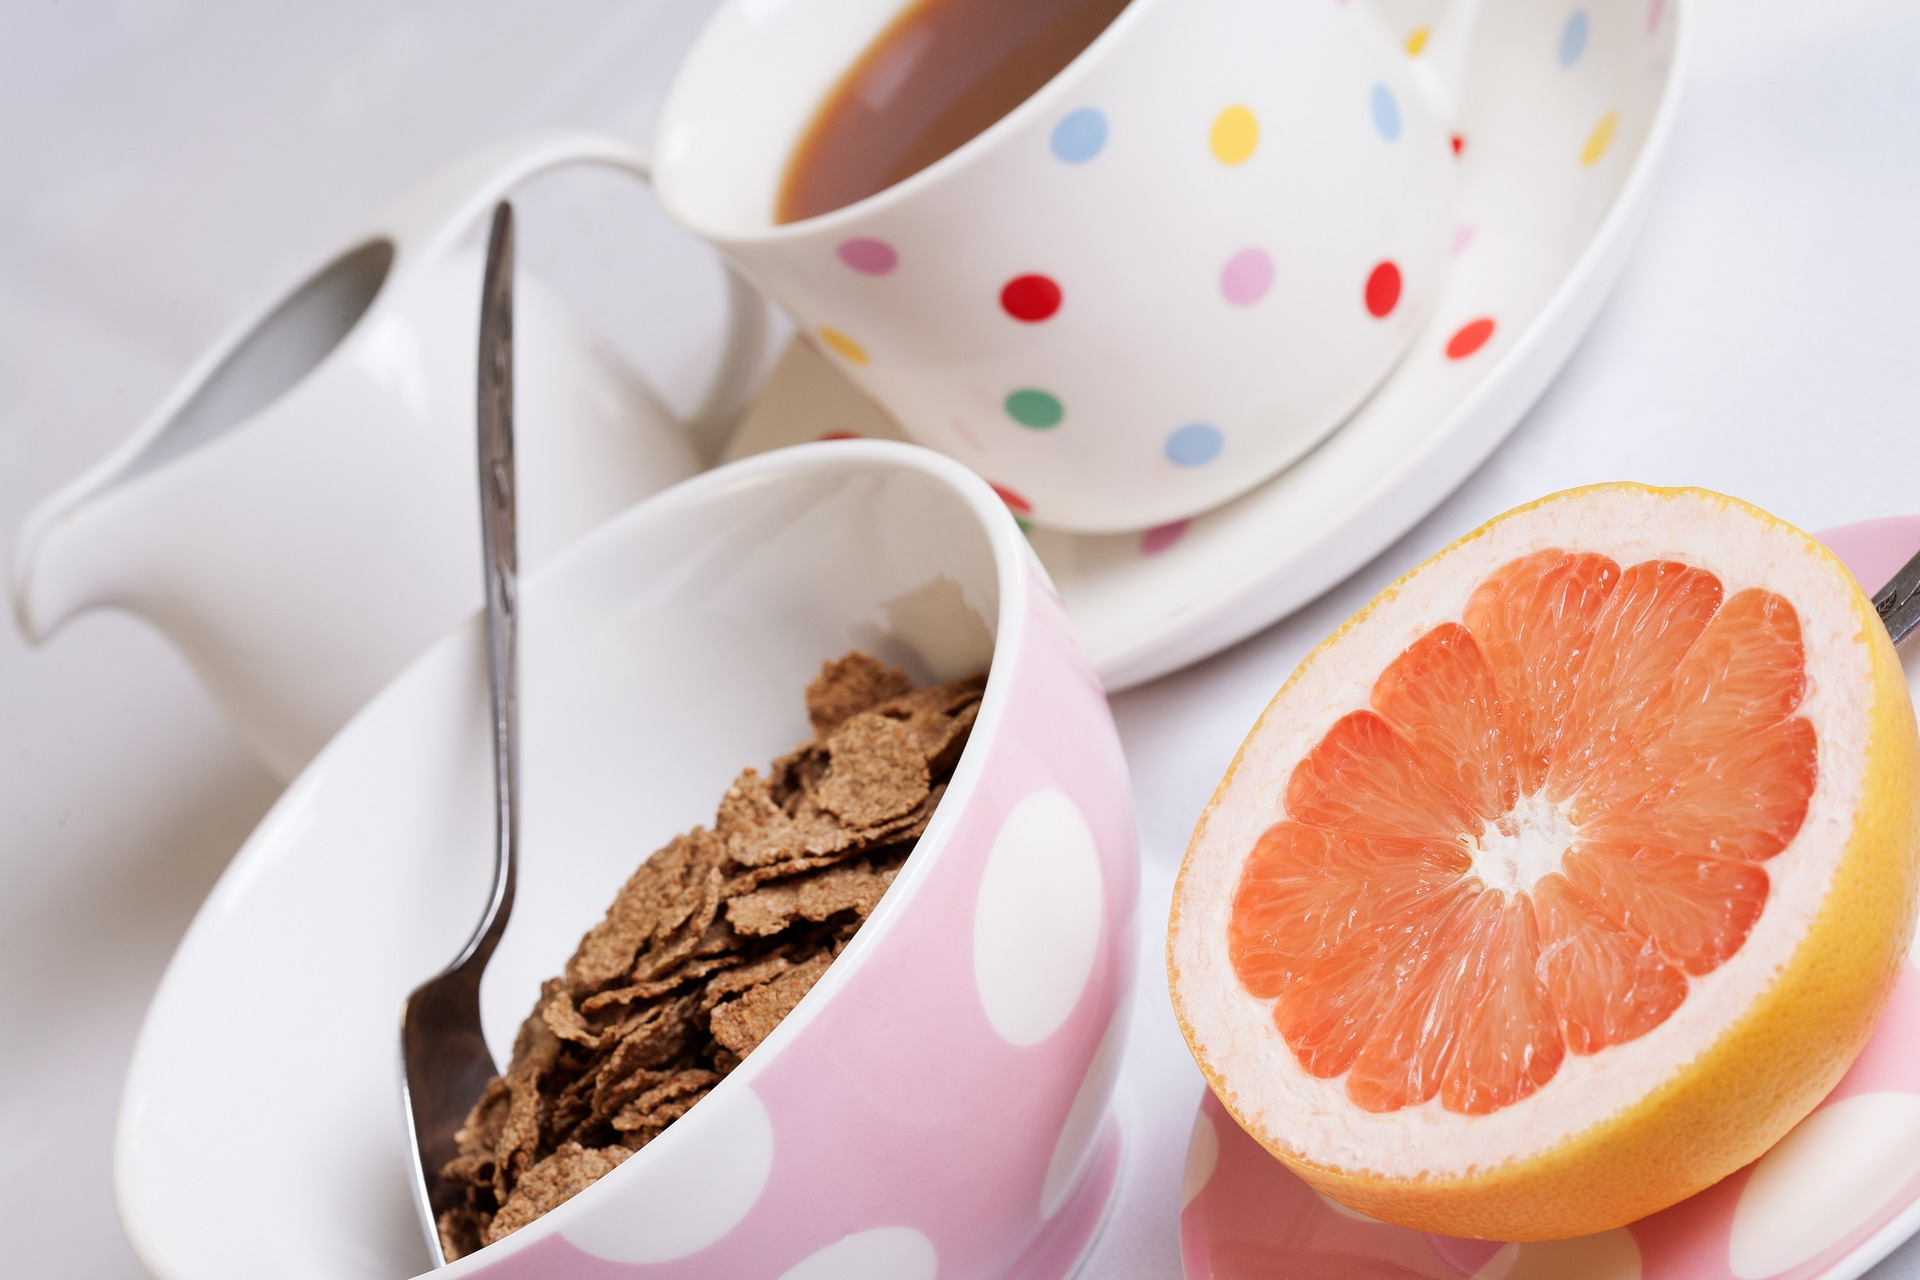 Nutritious Breakfast with cereal, orange, coffee